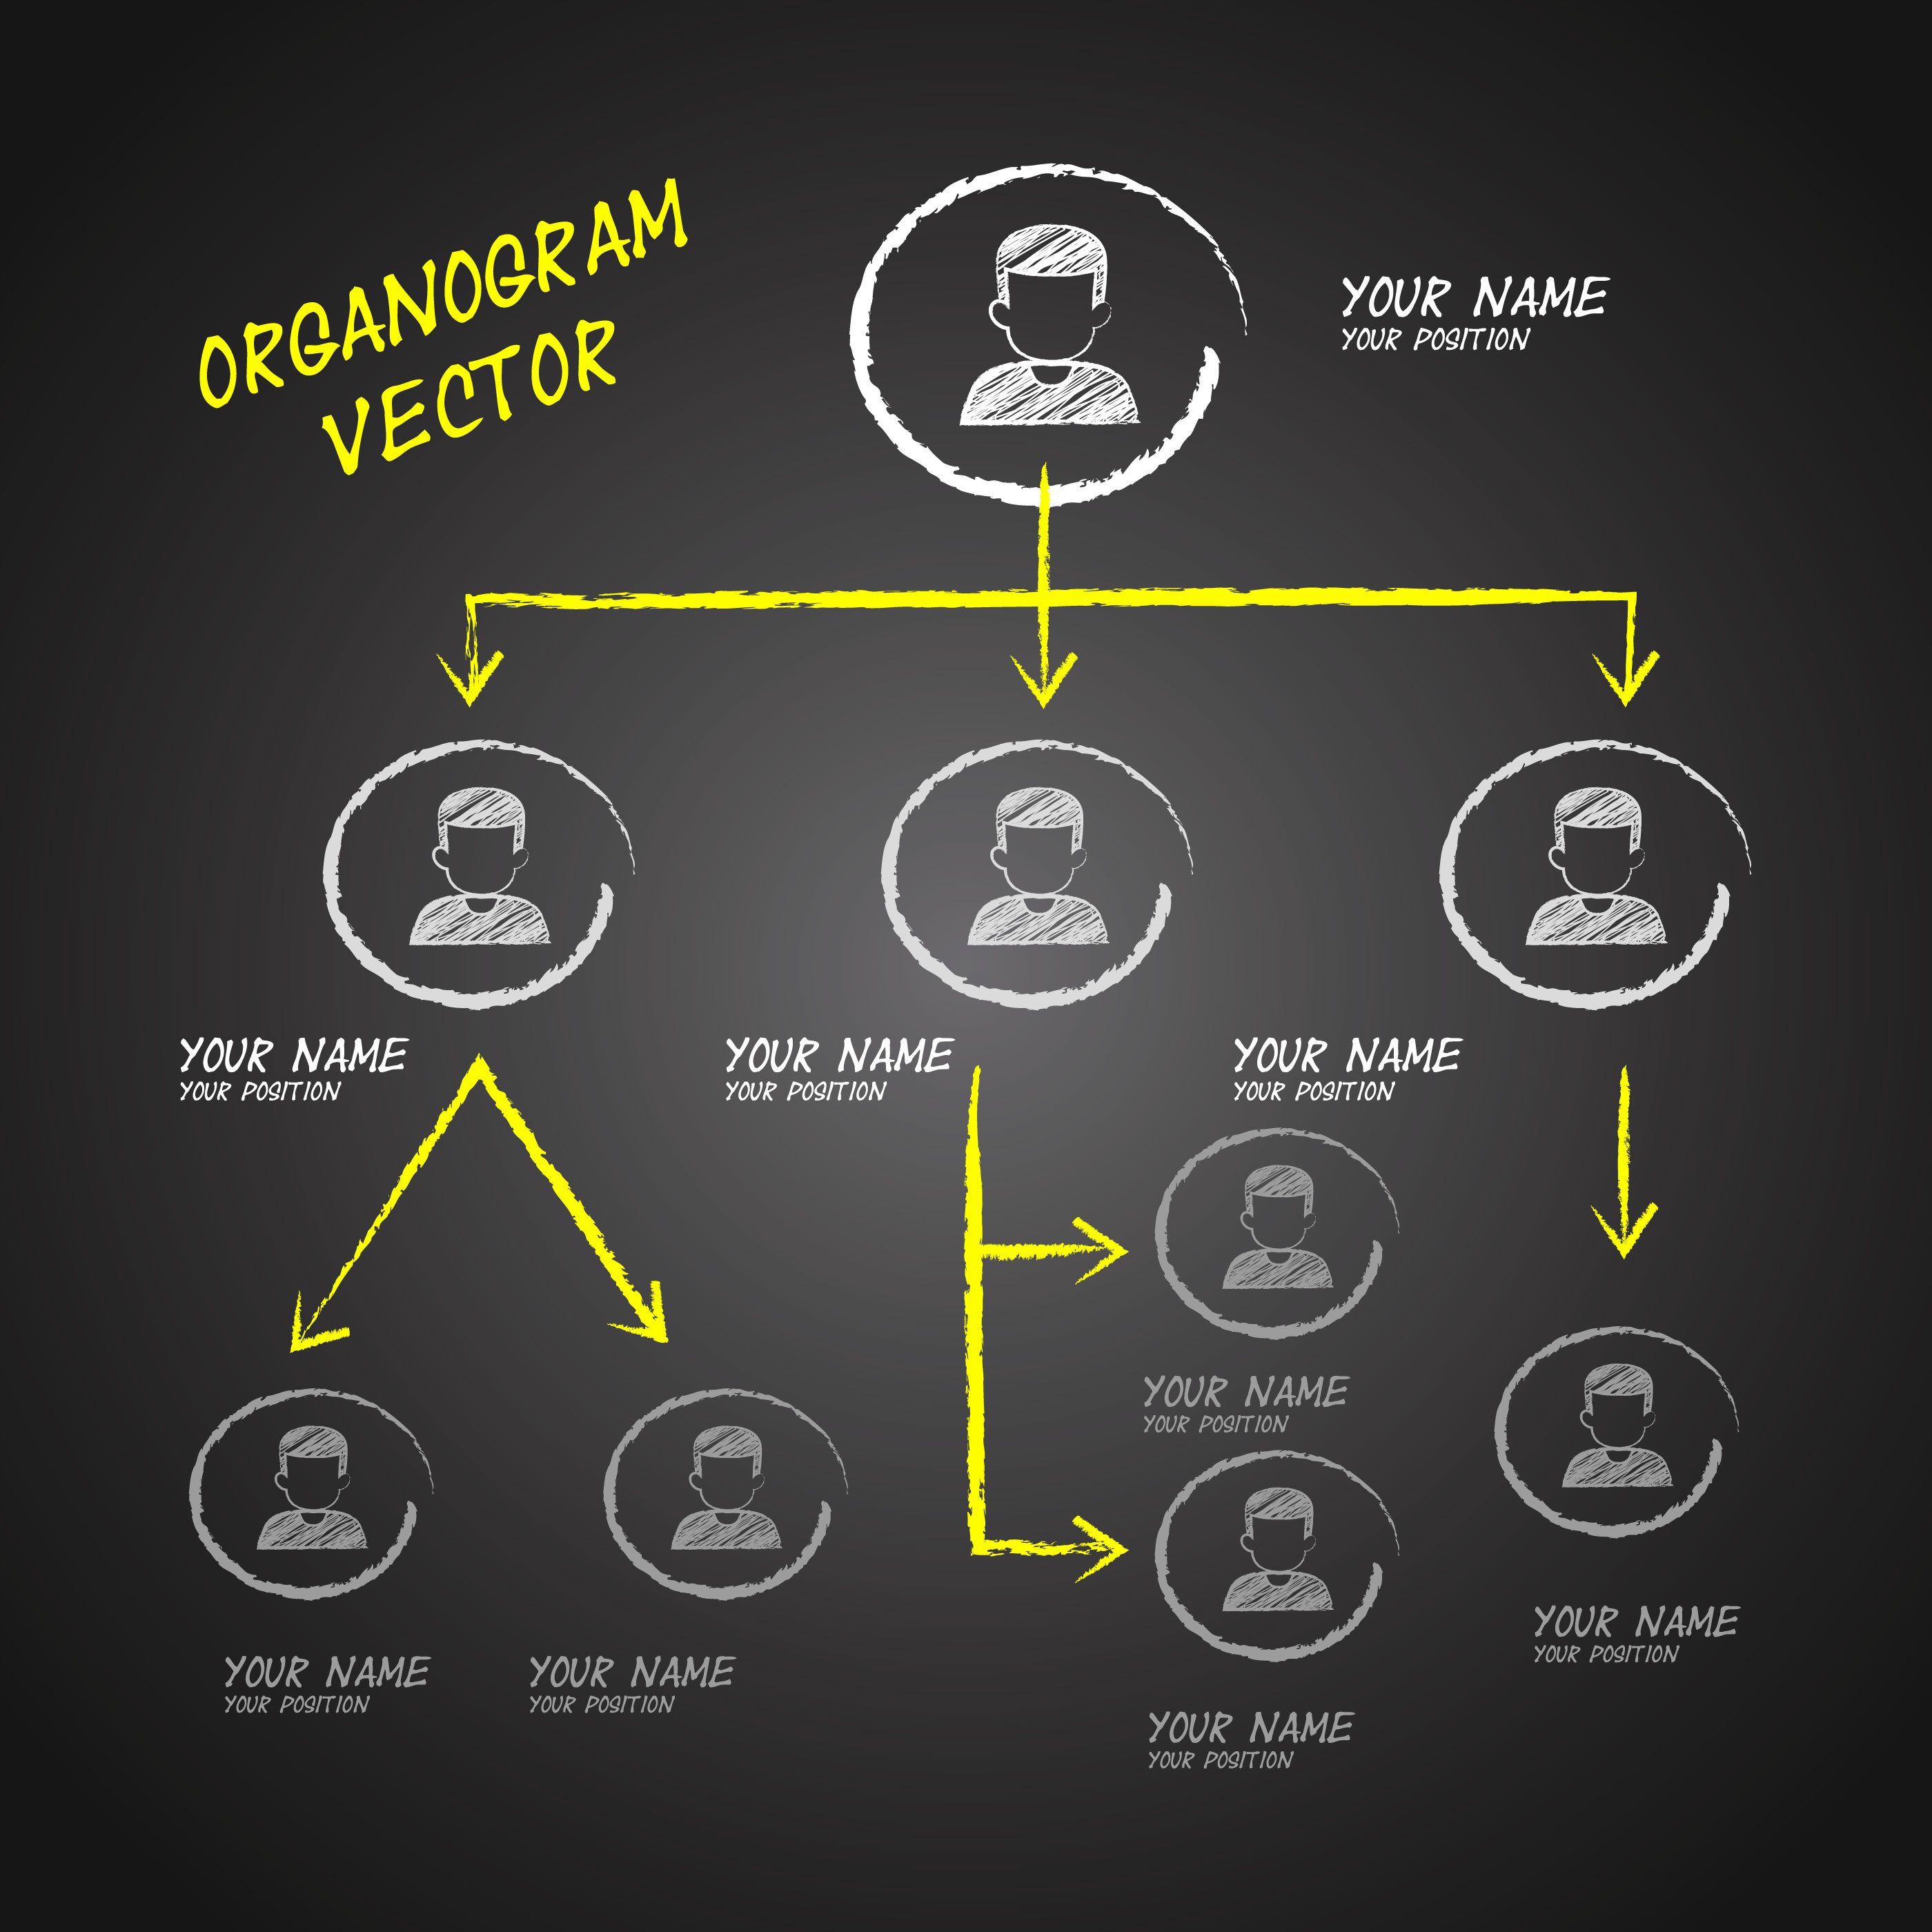 organogram chalkboard vector design download free vector